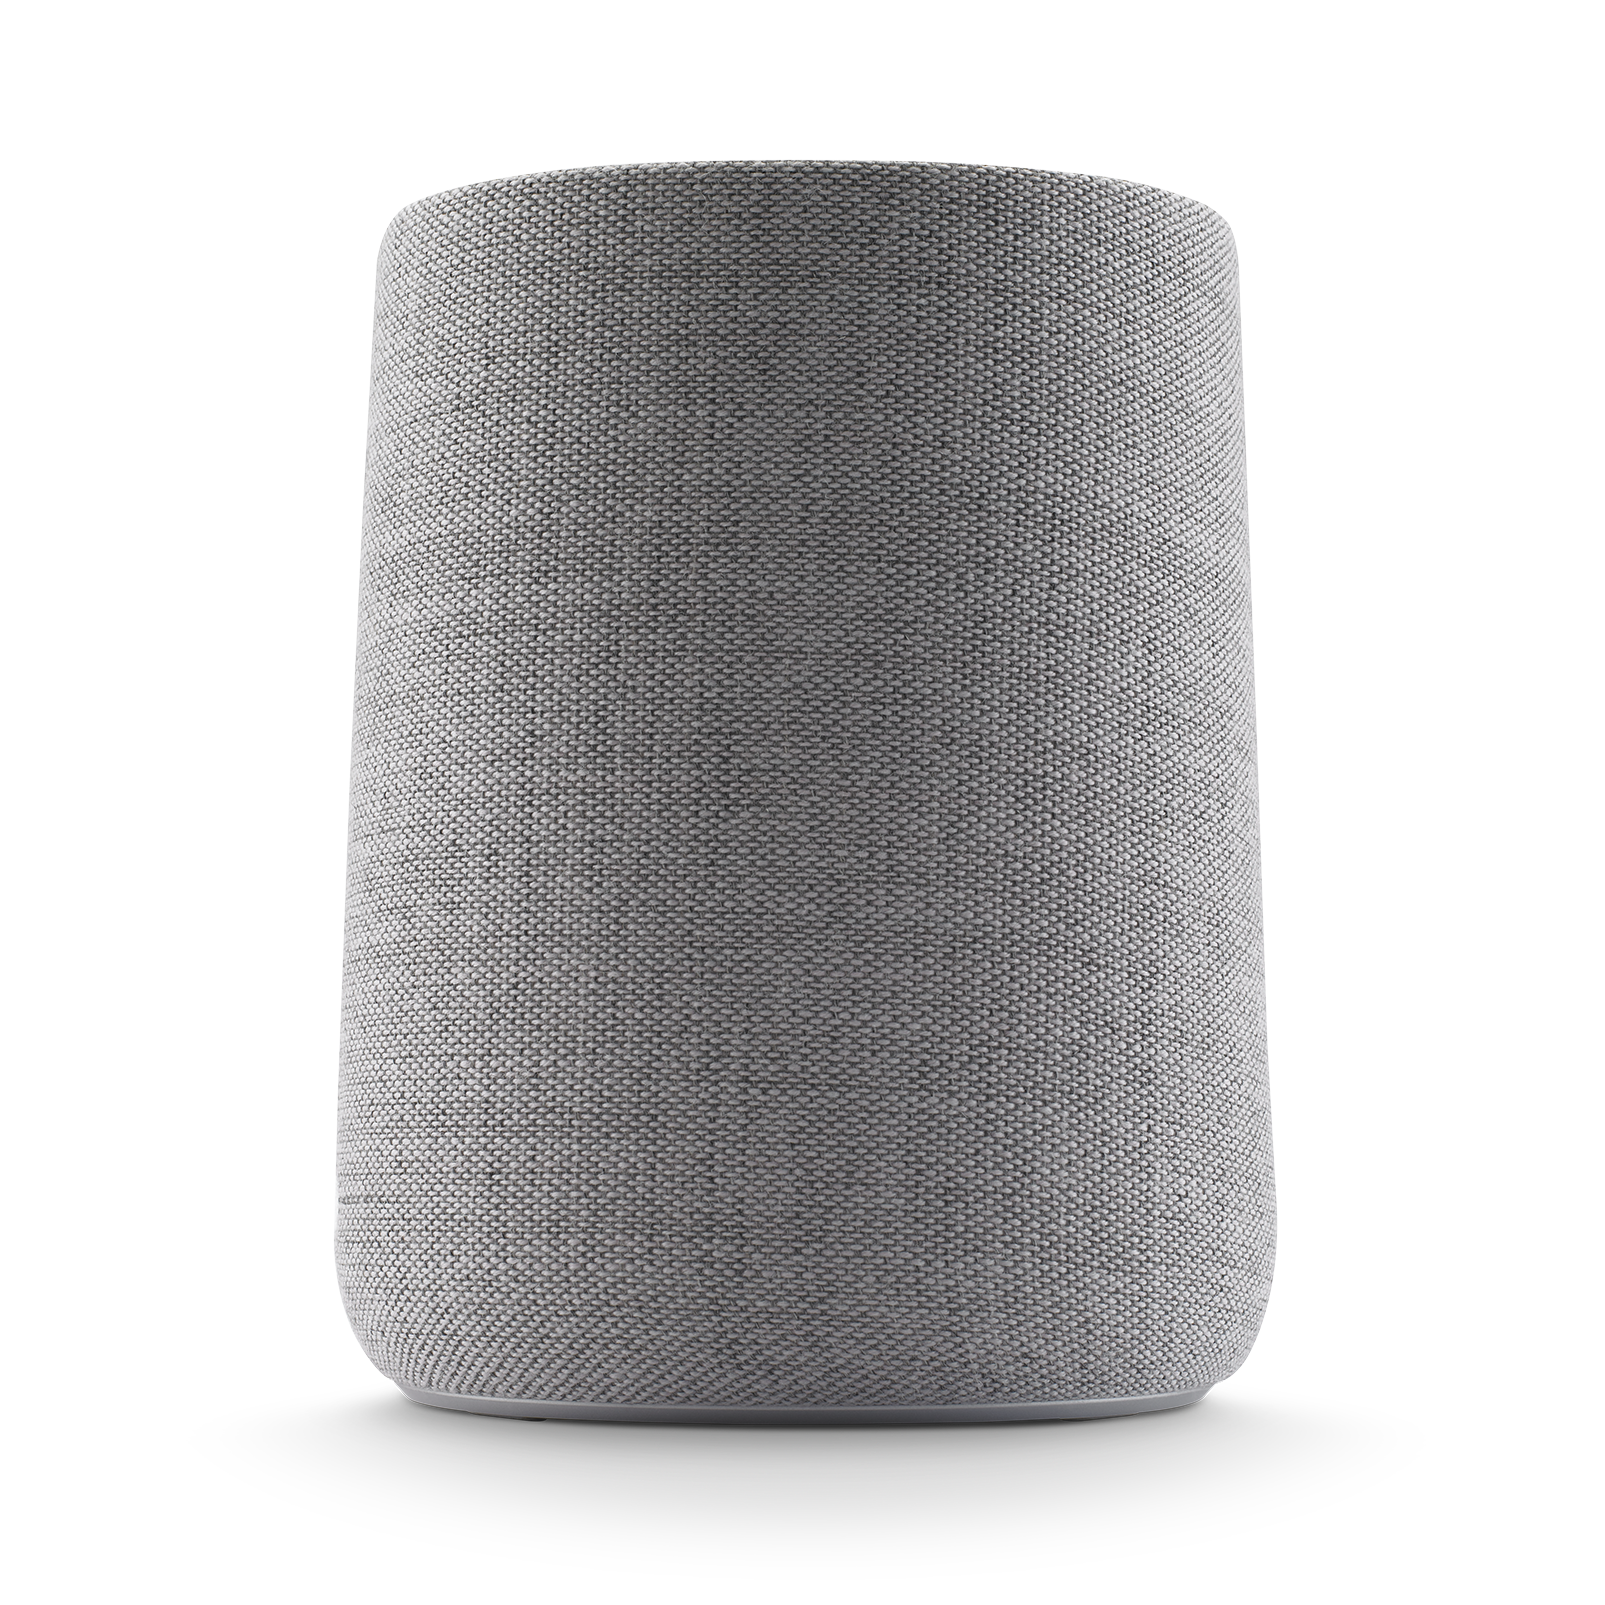 Harman Kardon Citation One MKII - Grey - All-in-one smart speaker with room-filling sound - Detailshot 1